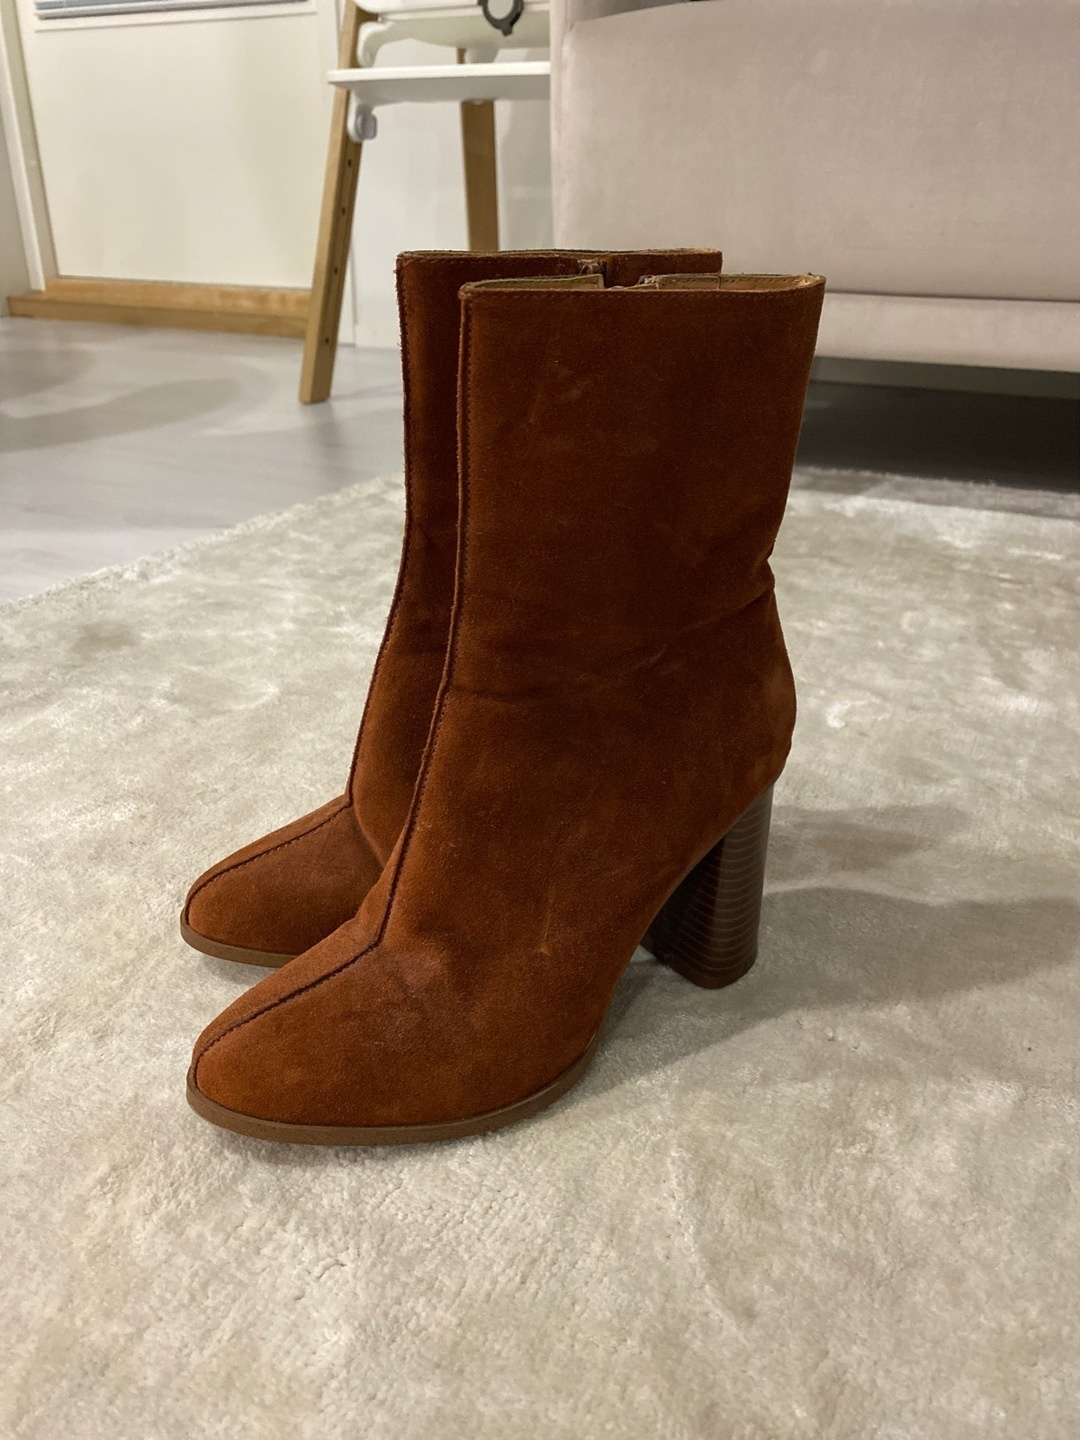 Women's boots - MANGO photo 1